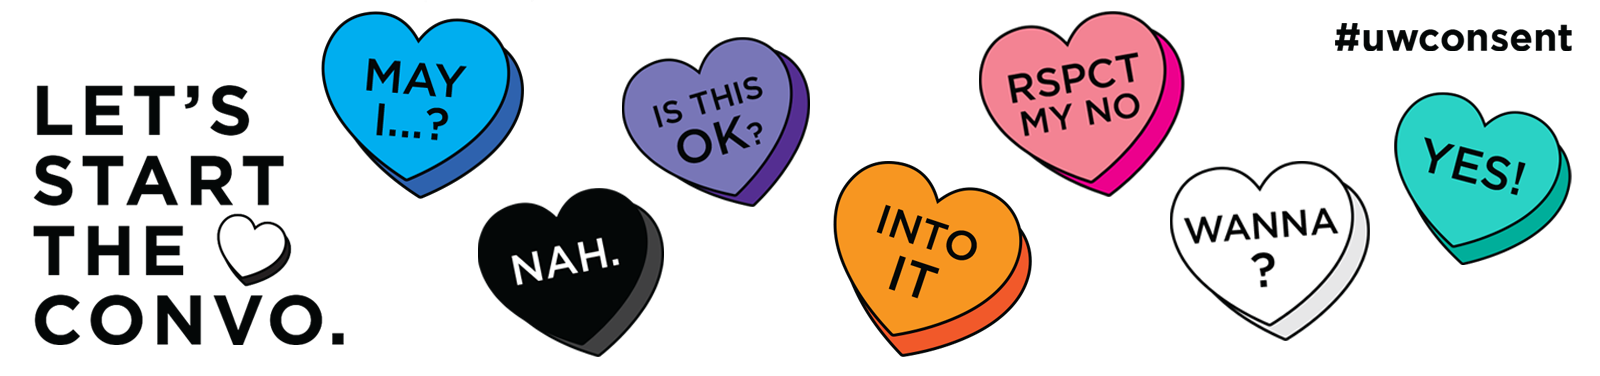 "Let's Start the Convo graphic with colored conversation hearts featuring phrases like ""Yes!"" and ""Nah."""